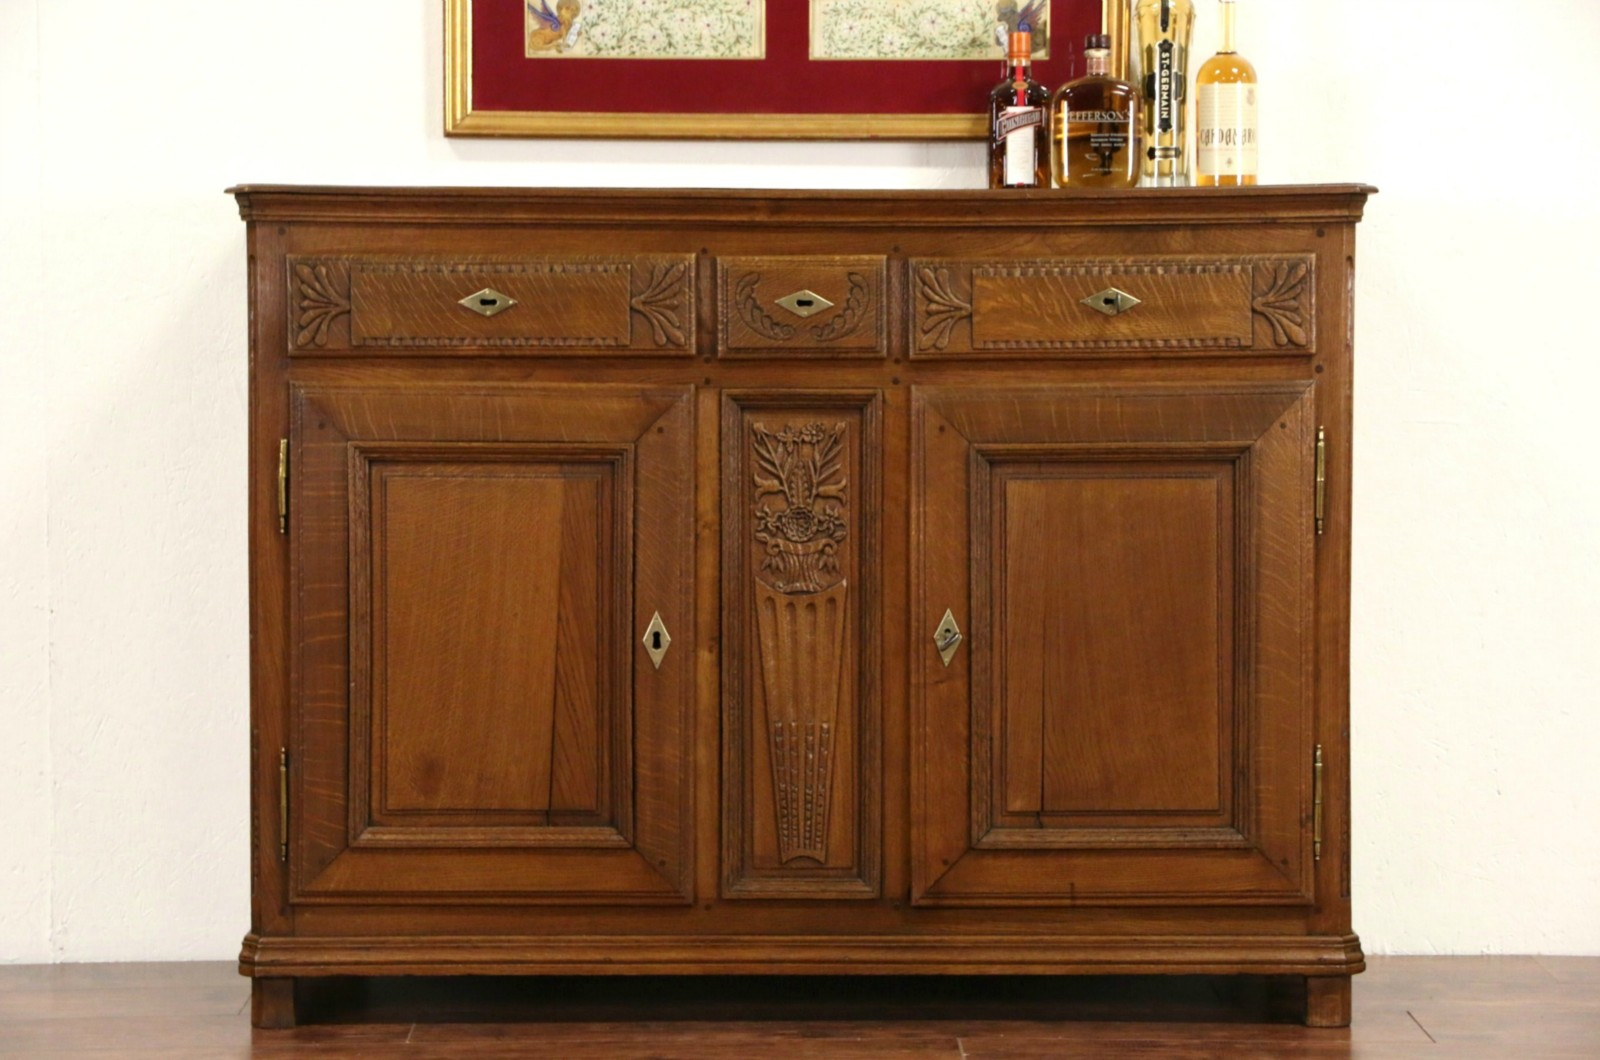 SOLD Country French 1820s Antique Oak Server Sideboard Or Buffet Harp Gallery